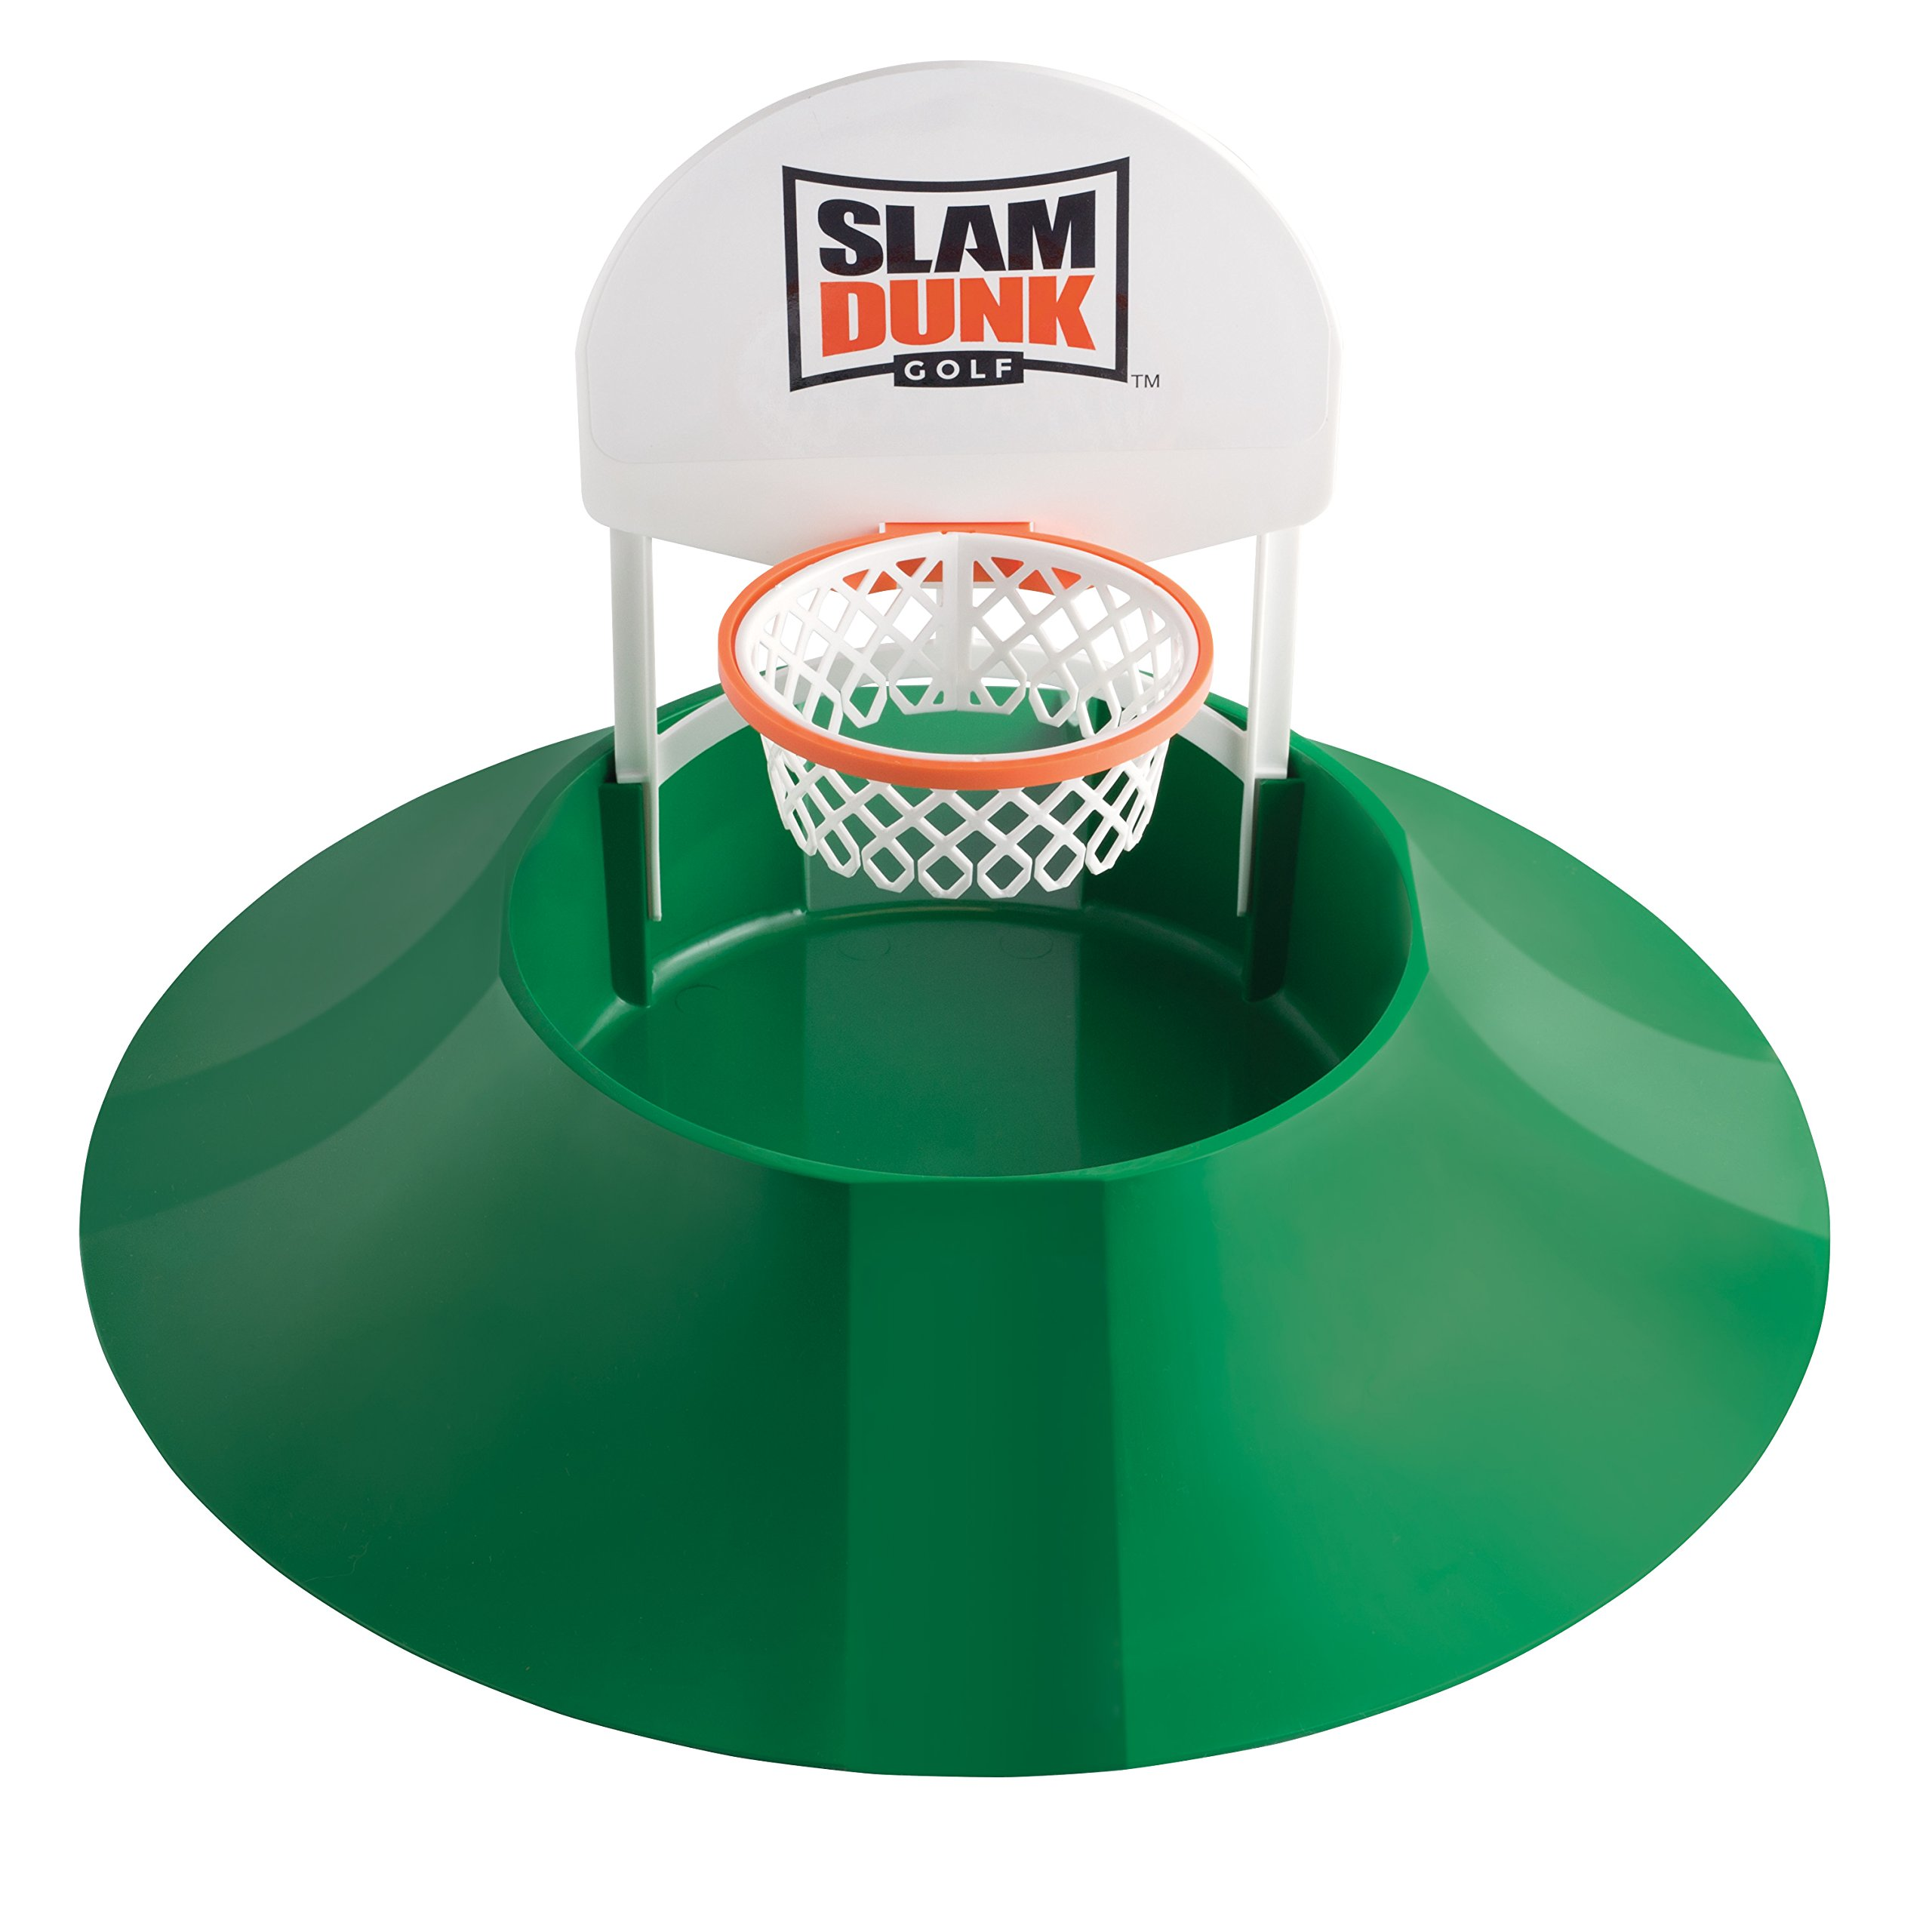 Slam Dunk Golf Hot Shot Putting Cup Game